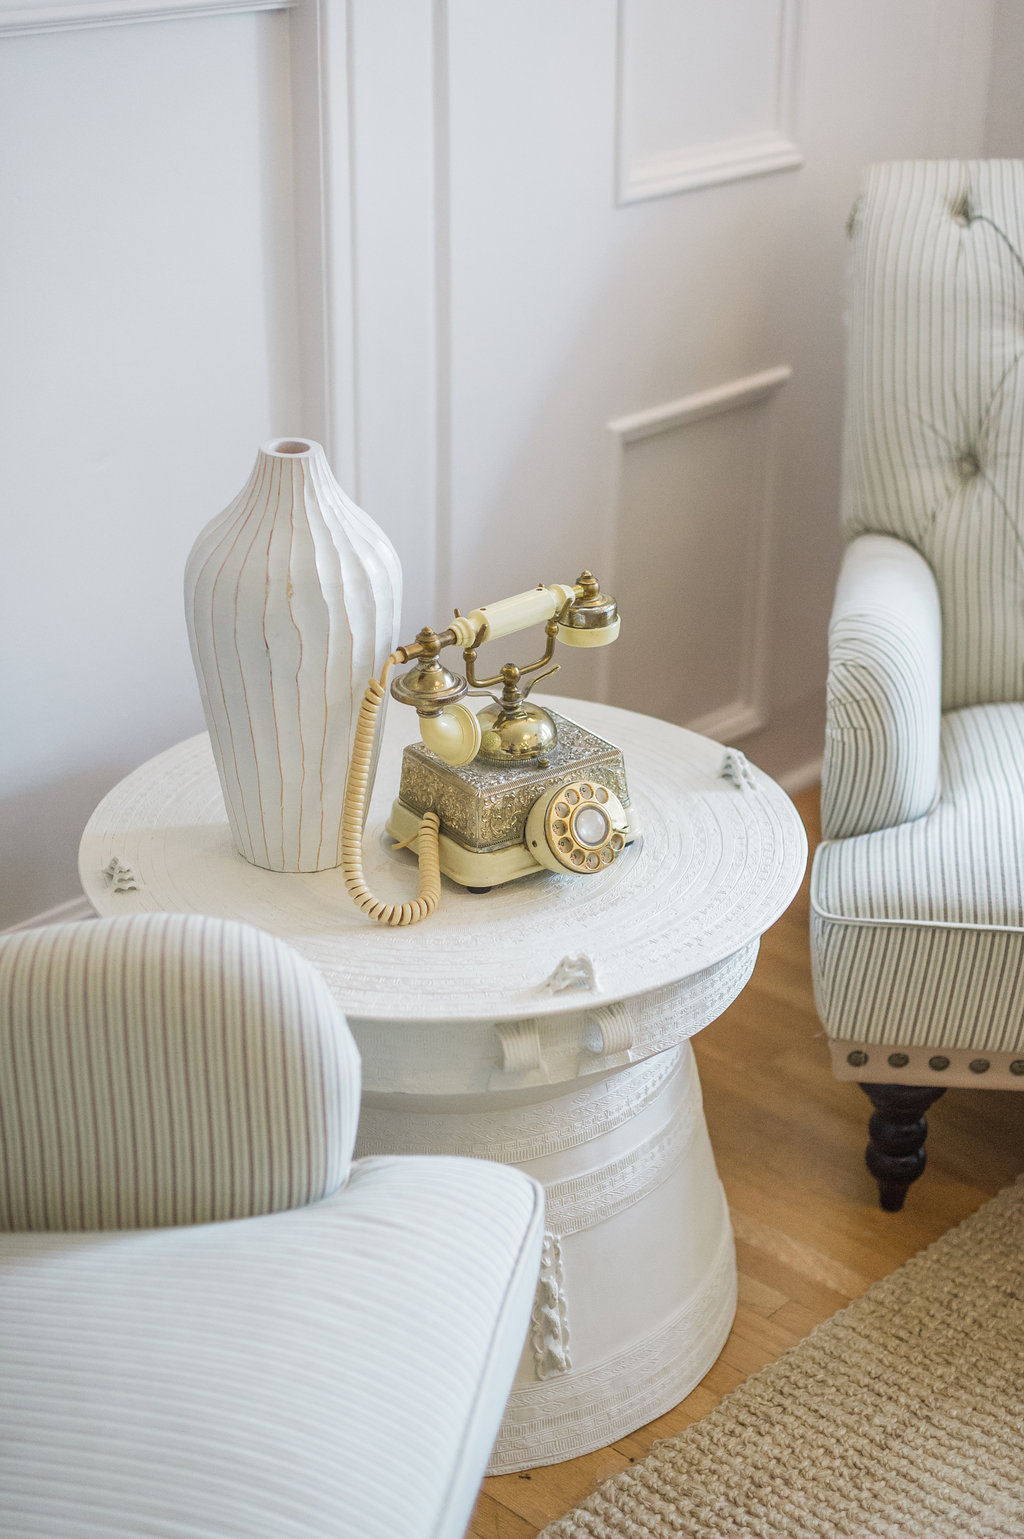 Modern French Country Family Room Renovation Reveal - The Leslie Style